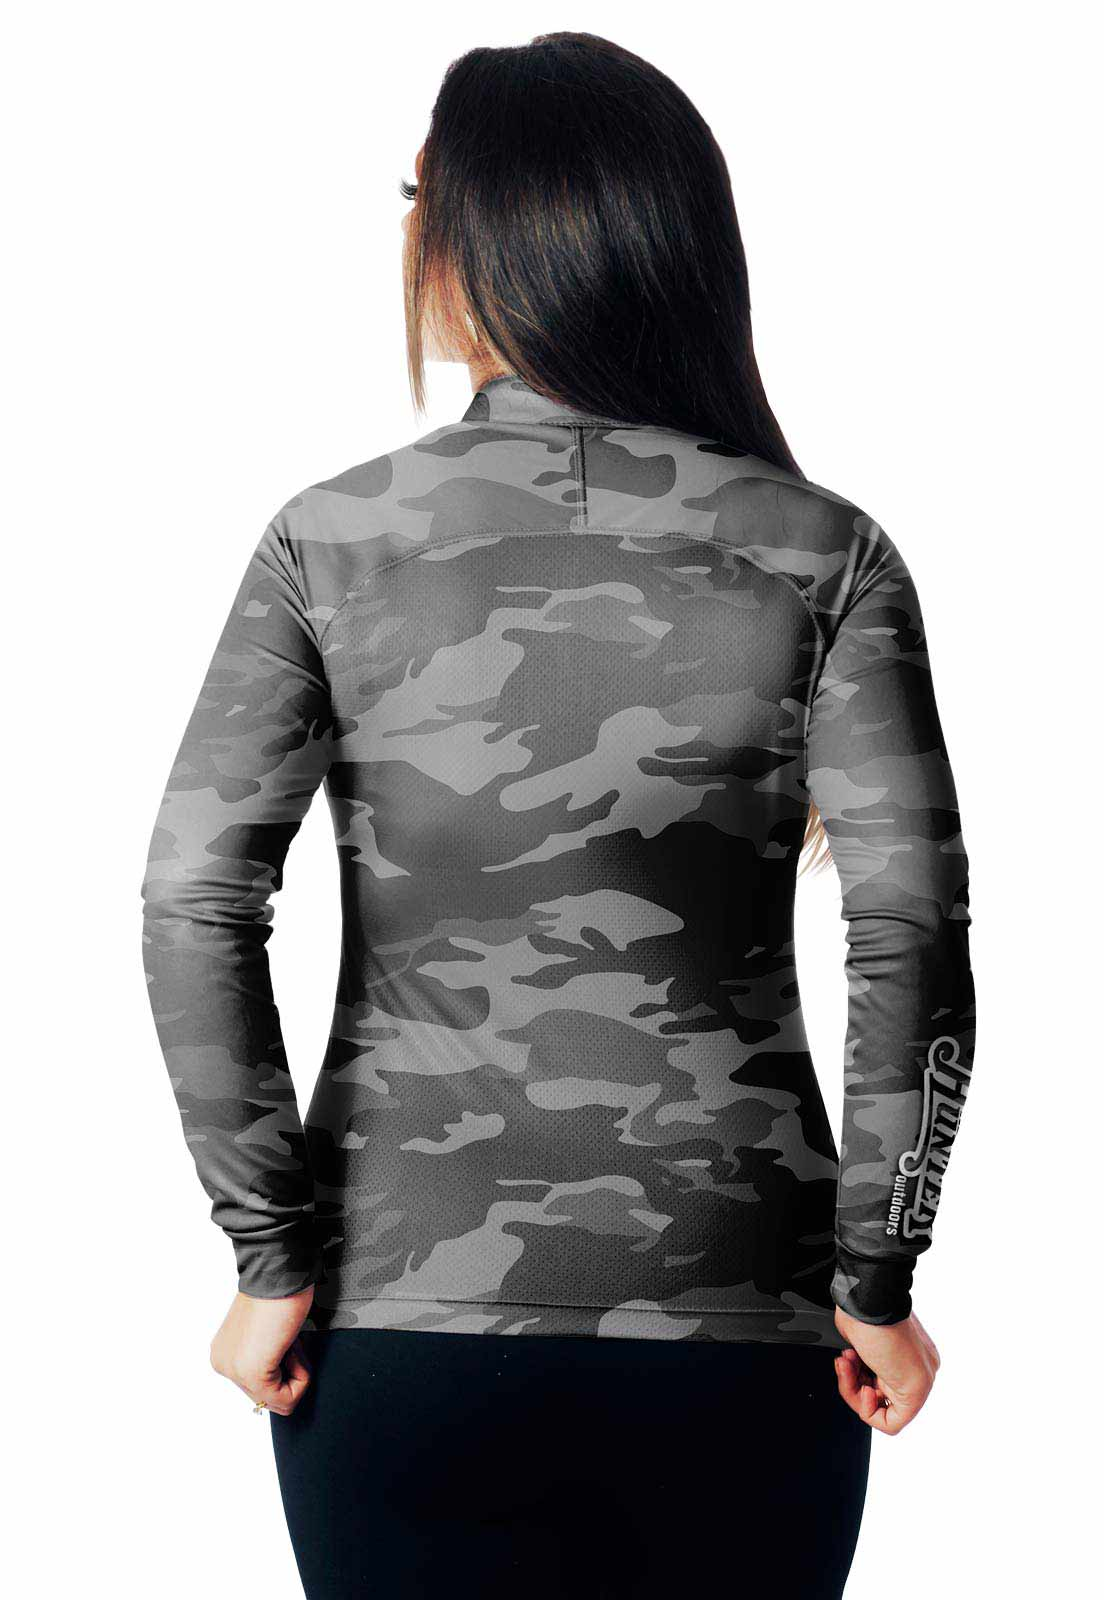 CAMISA DE PESCA FISH CAMUFLADA URBANO BLACK 36 FEMININA + BANDANA GRÁTIS  - REAL HUNTER OUTDOORS